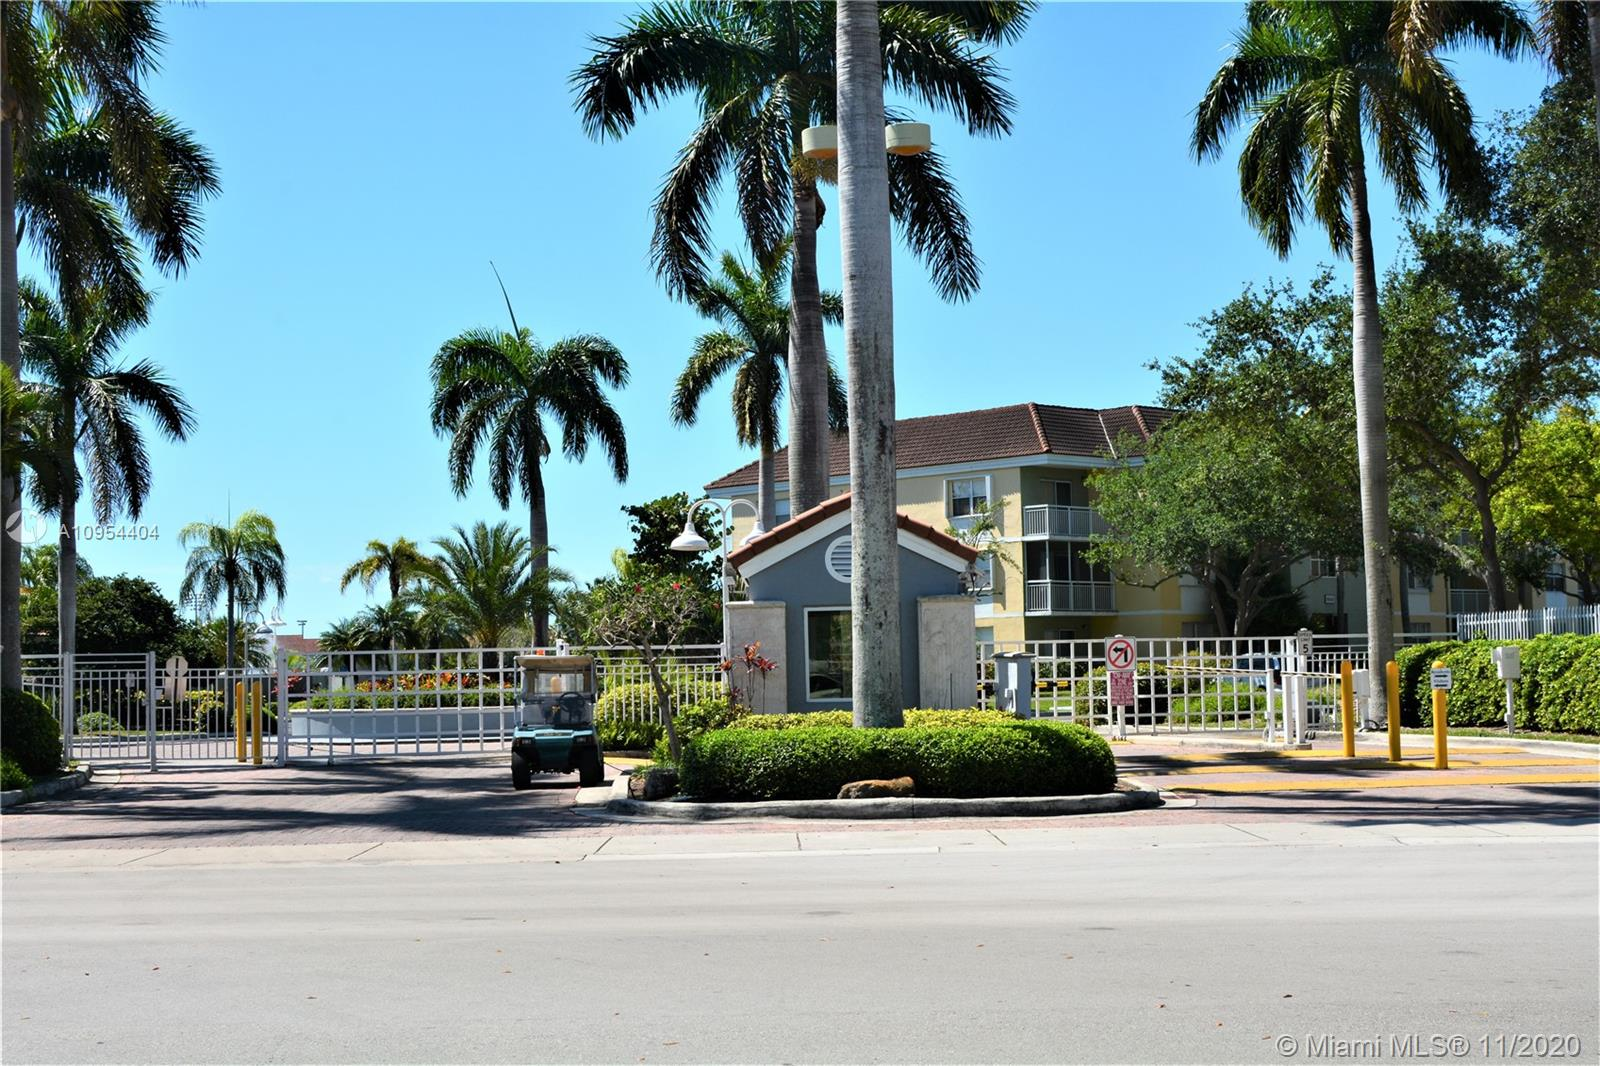 Amazing corner unit at Le Club, 2 bedrooms, 2 bathrooms, totally remodeled, new kitchen w/ granite countertops, stainless steel appliances, new bathrooms vanities w/granite countertops, accordion shutters, new washer and dryer inside the unit, wood floors in the bedrooms, tile floors in the social areas, great layout, pool, tennis, BBQ area, kids playground, and gym included, gated community with security. No pets. Great location, minutes from Turnpike, restaurants and much more. Tenant occupied until January 31st 2021.